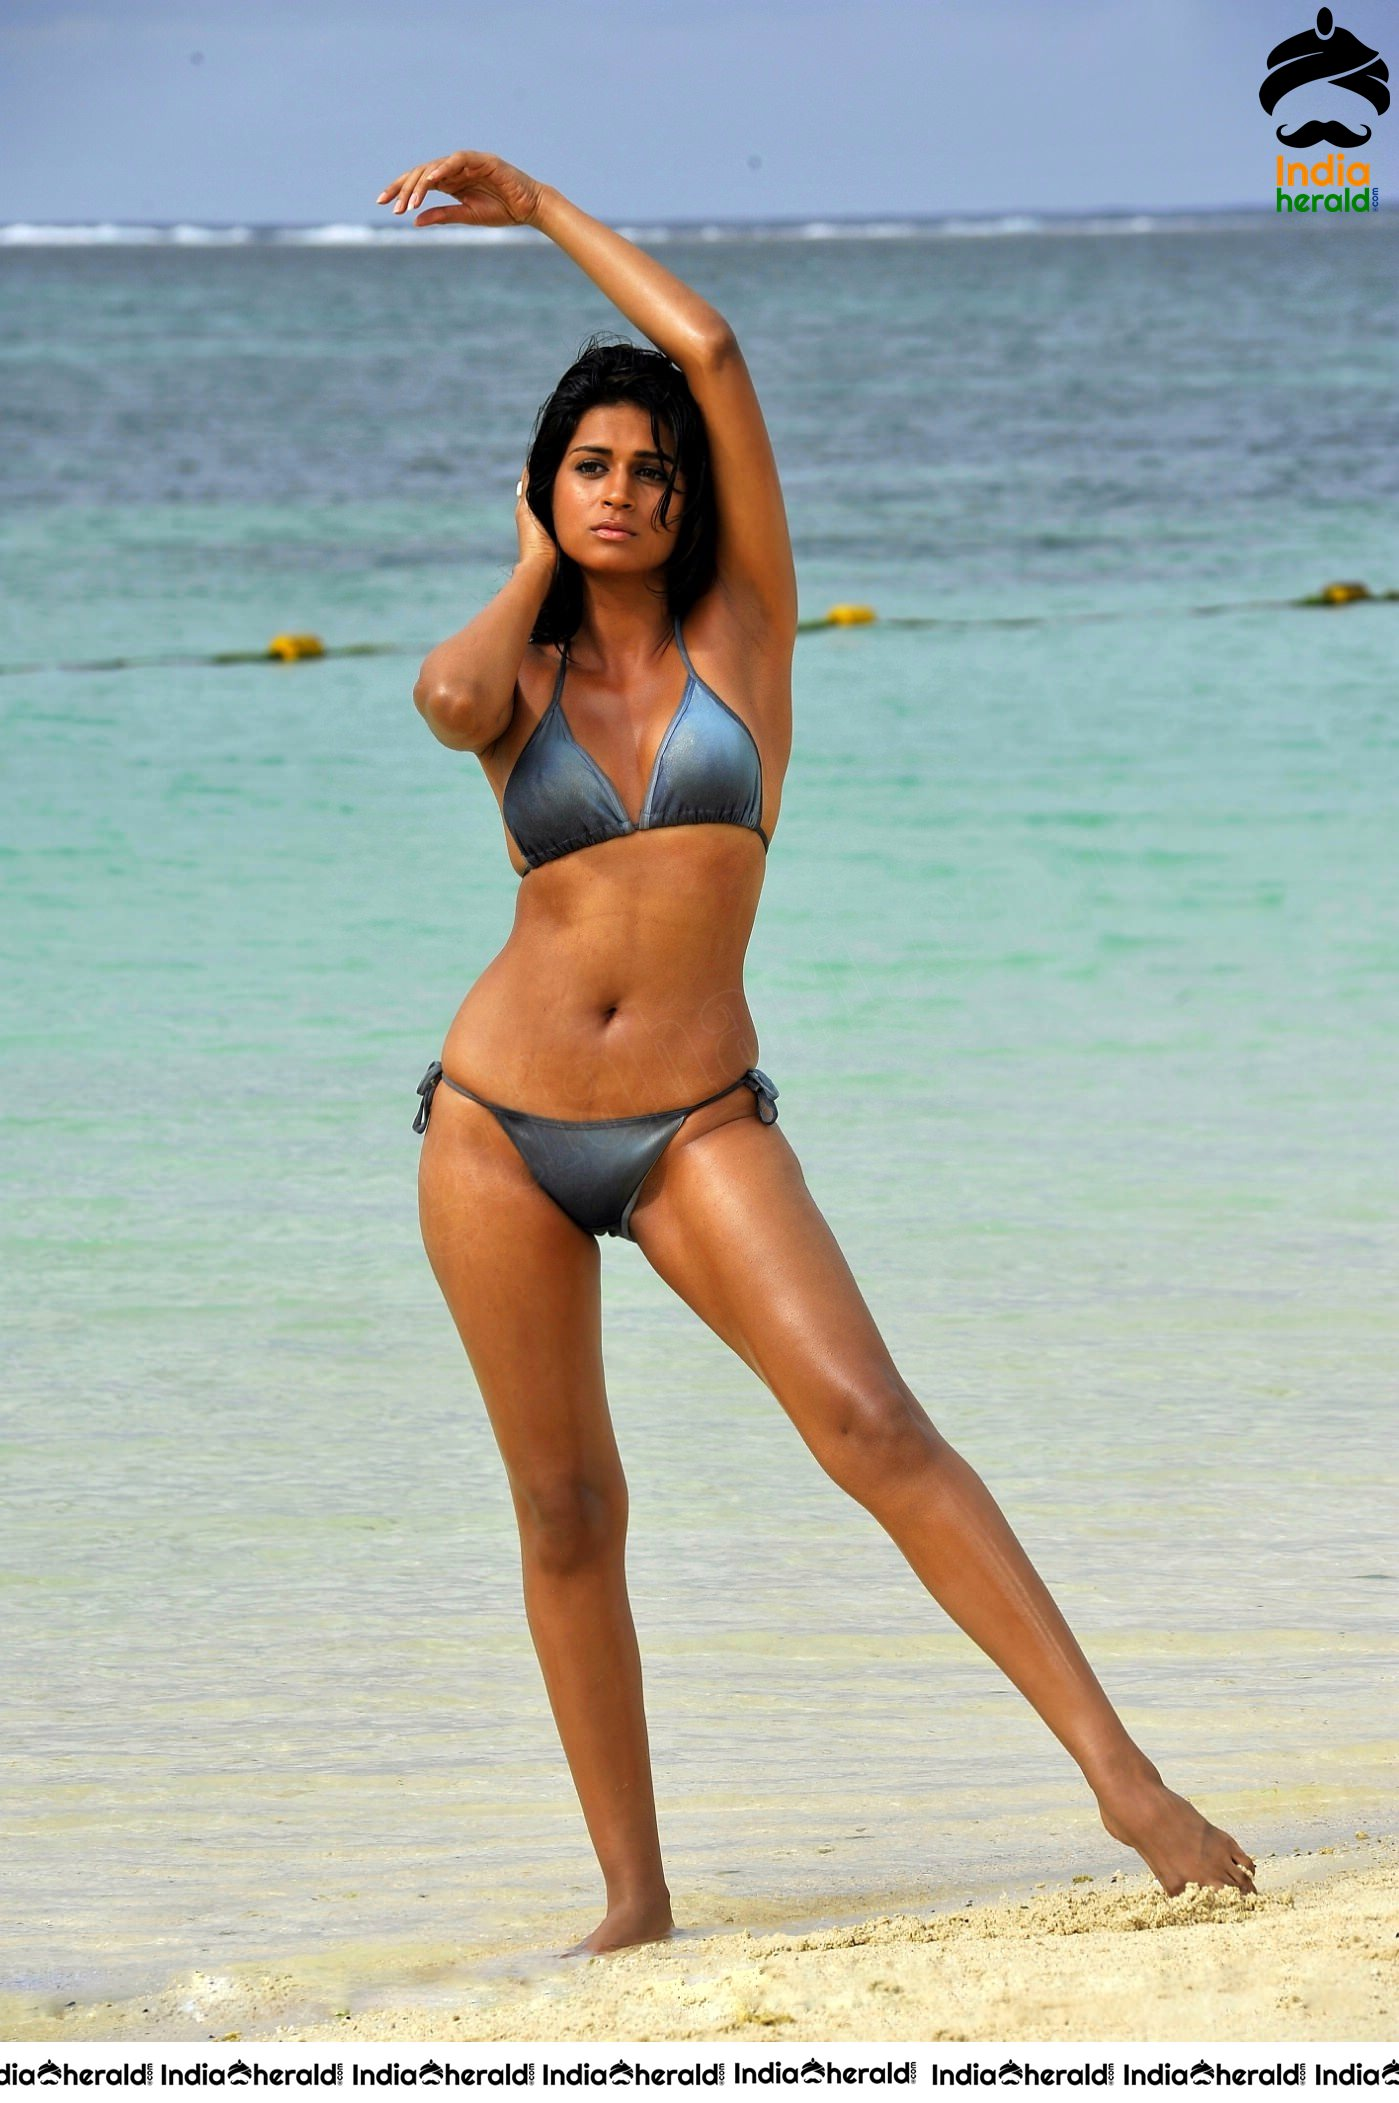 Hot HD Shraddha Das Two Piece Bikini Clicks Set 3